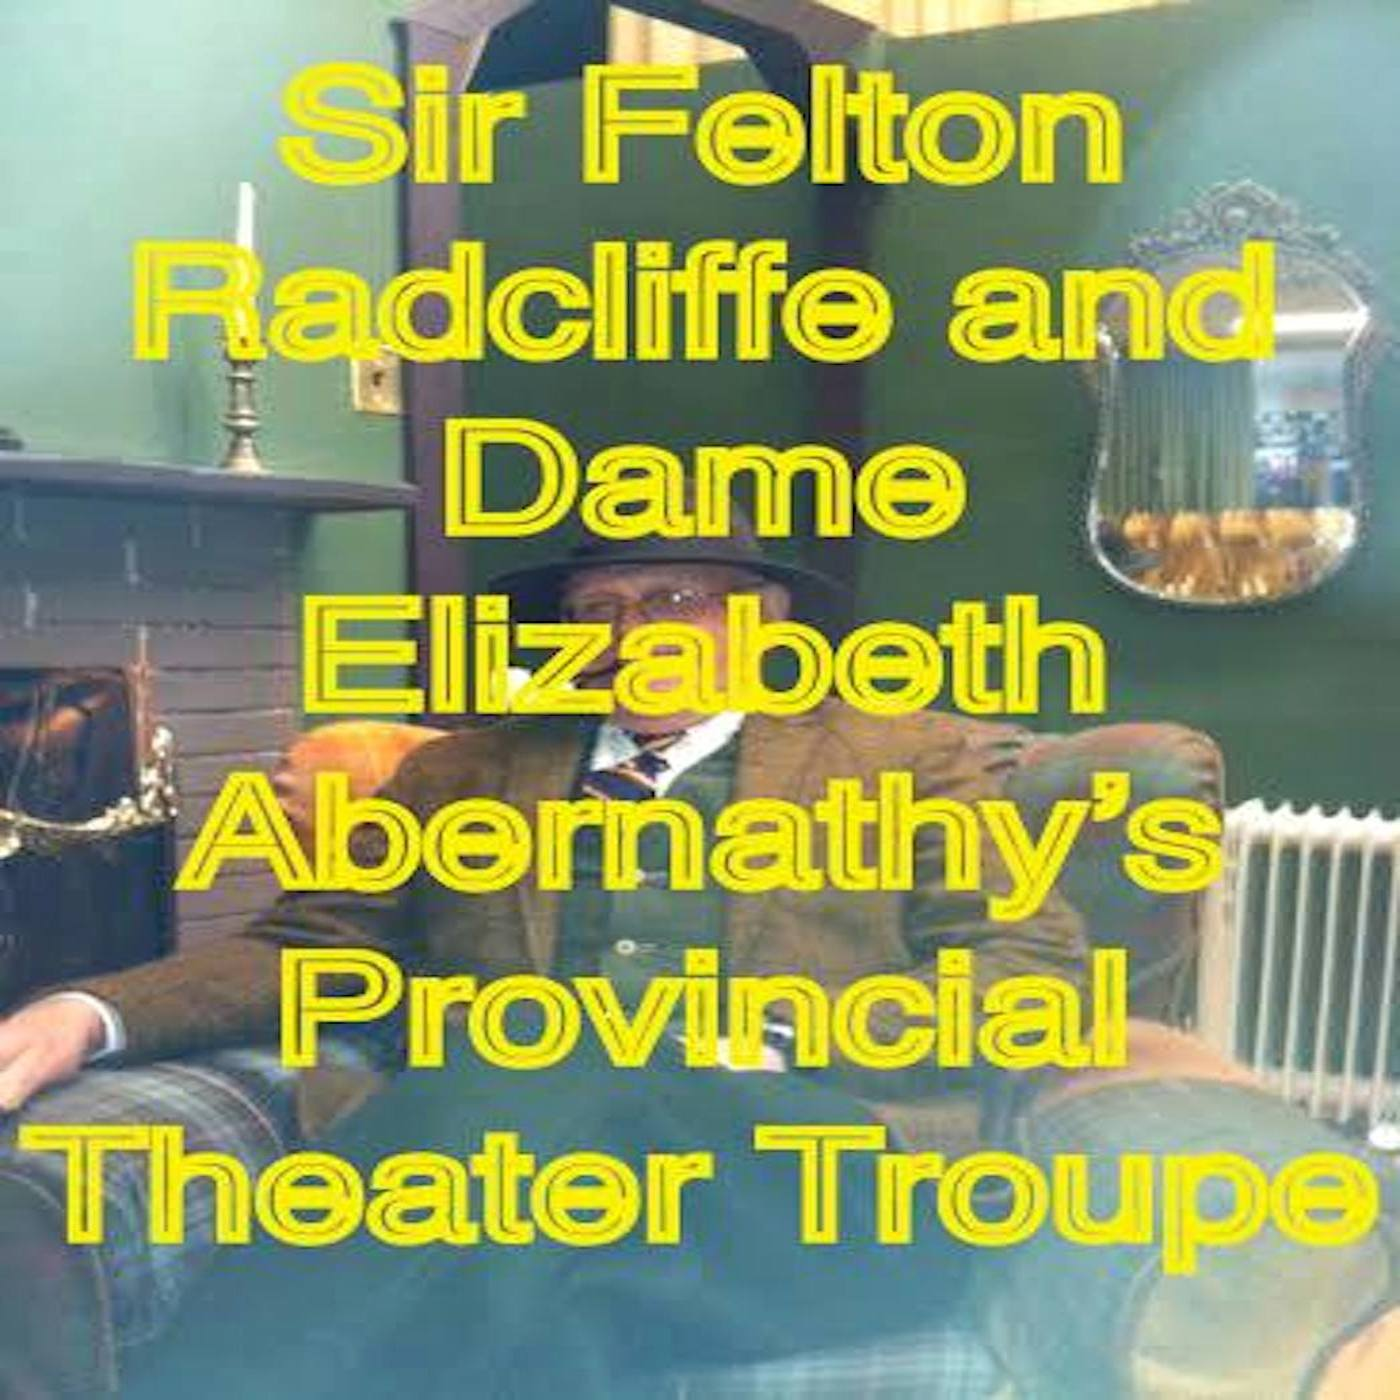 Sir Felton Radcliffe and Dame Elizabeth Abernathy's Provincial Theatre Troupe - Dry Run Productions